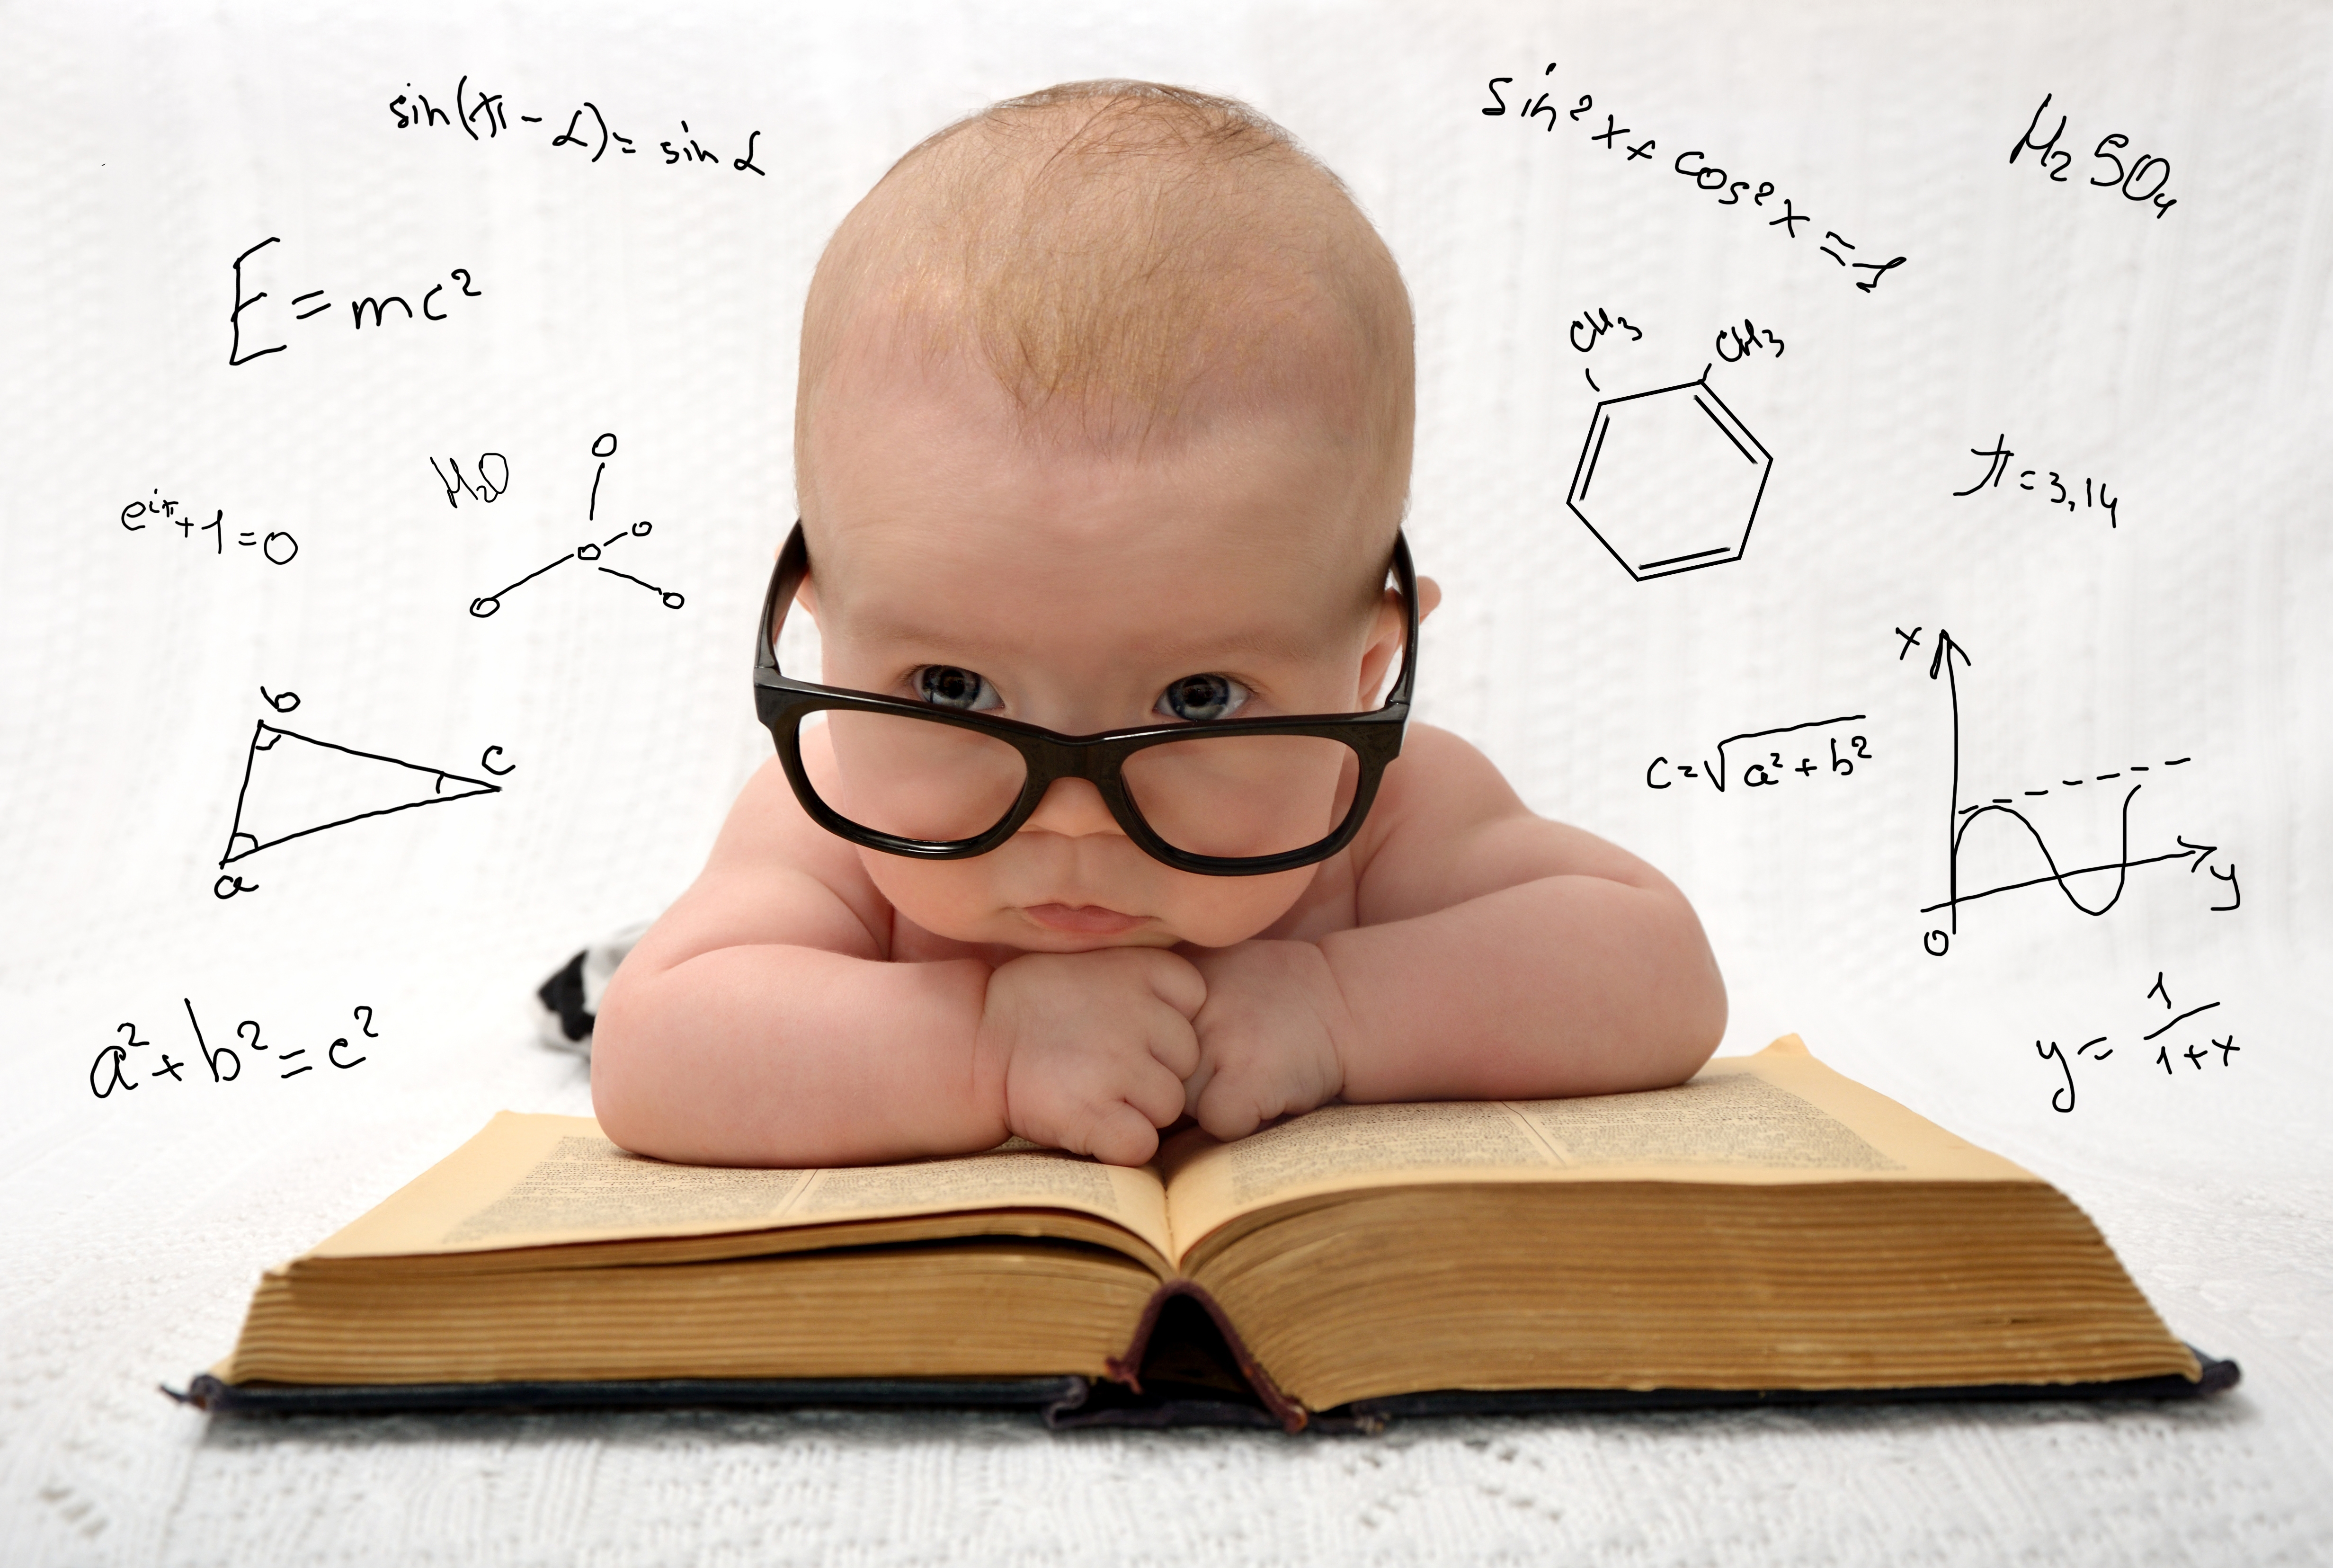 Element Of Surprise Helps Babies Learn 'Significantly' Better